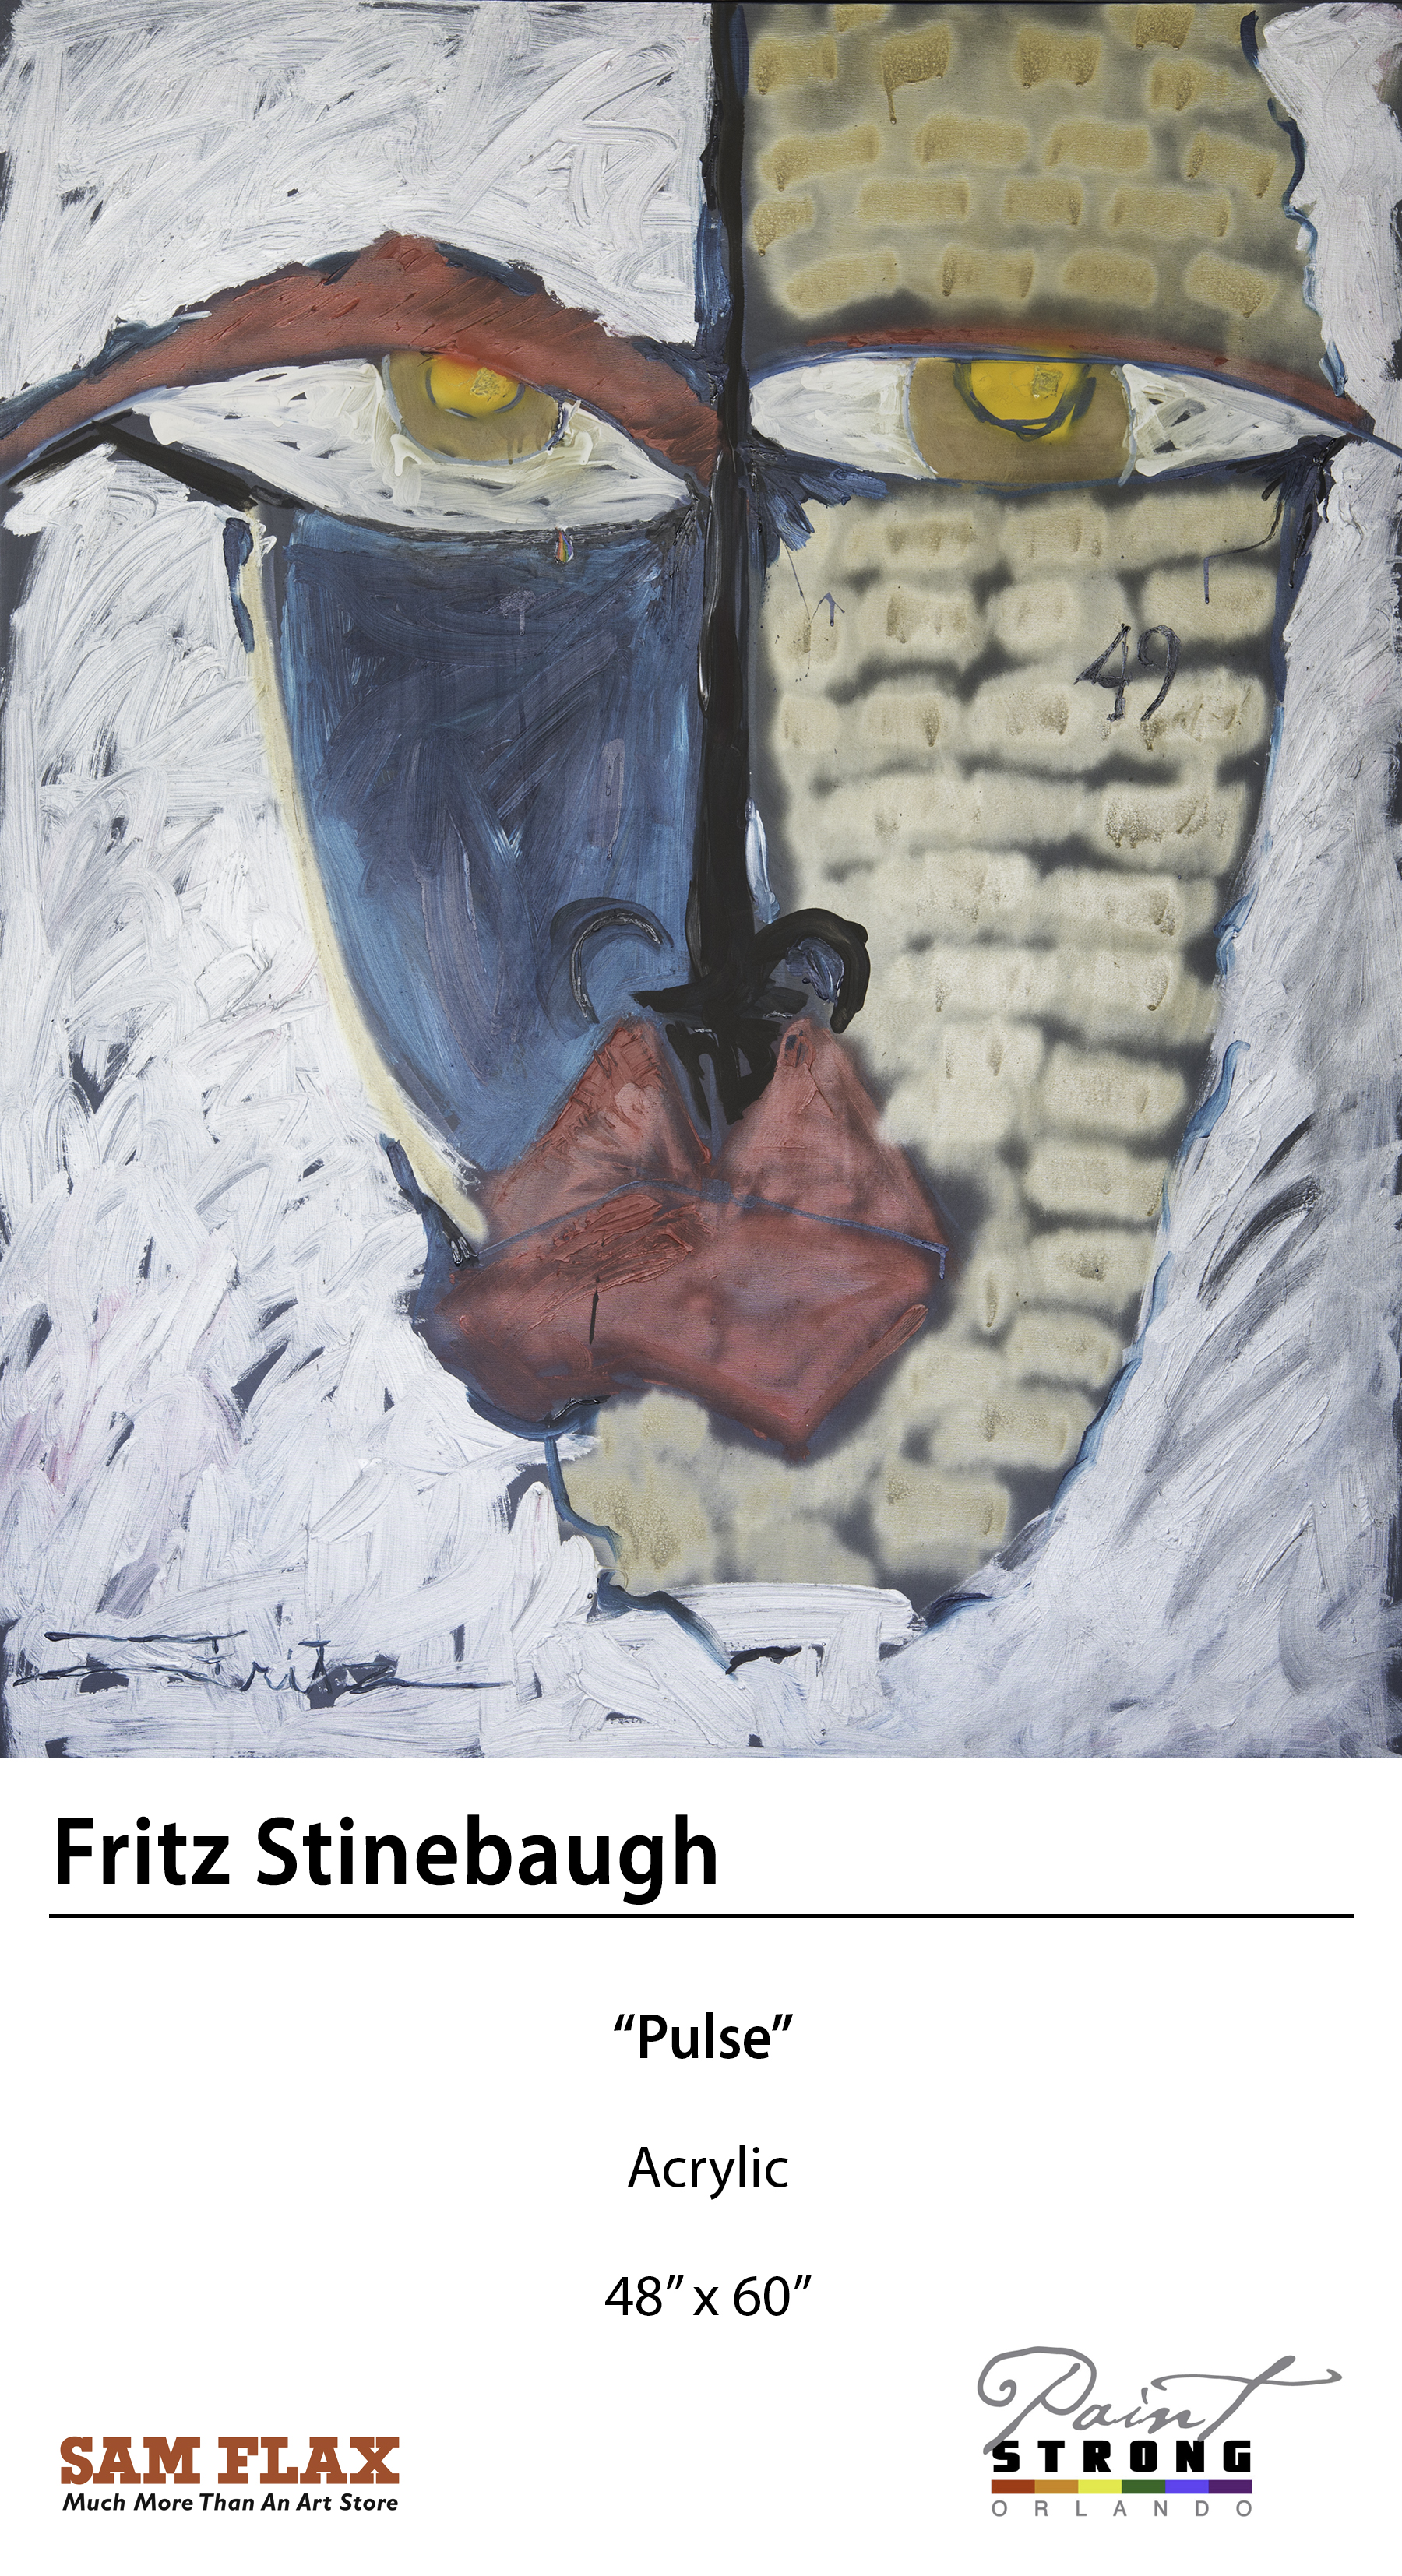 Fritz Stinebaugh